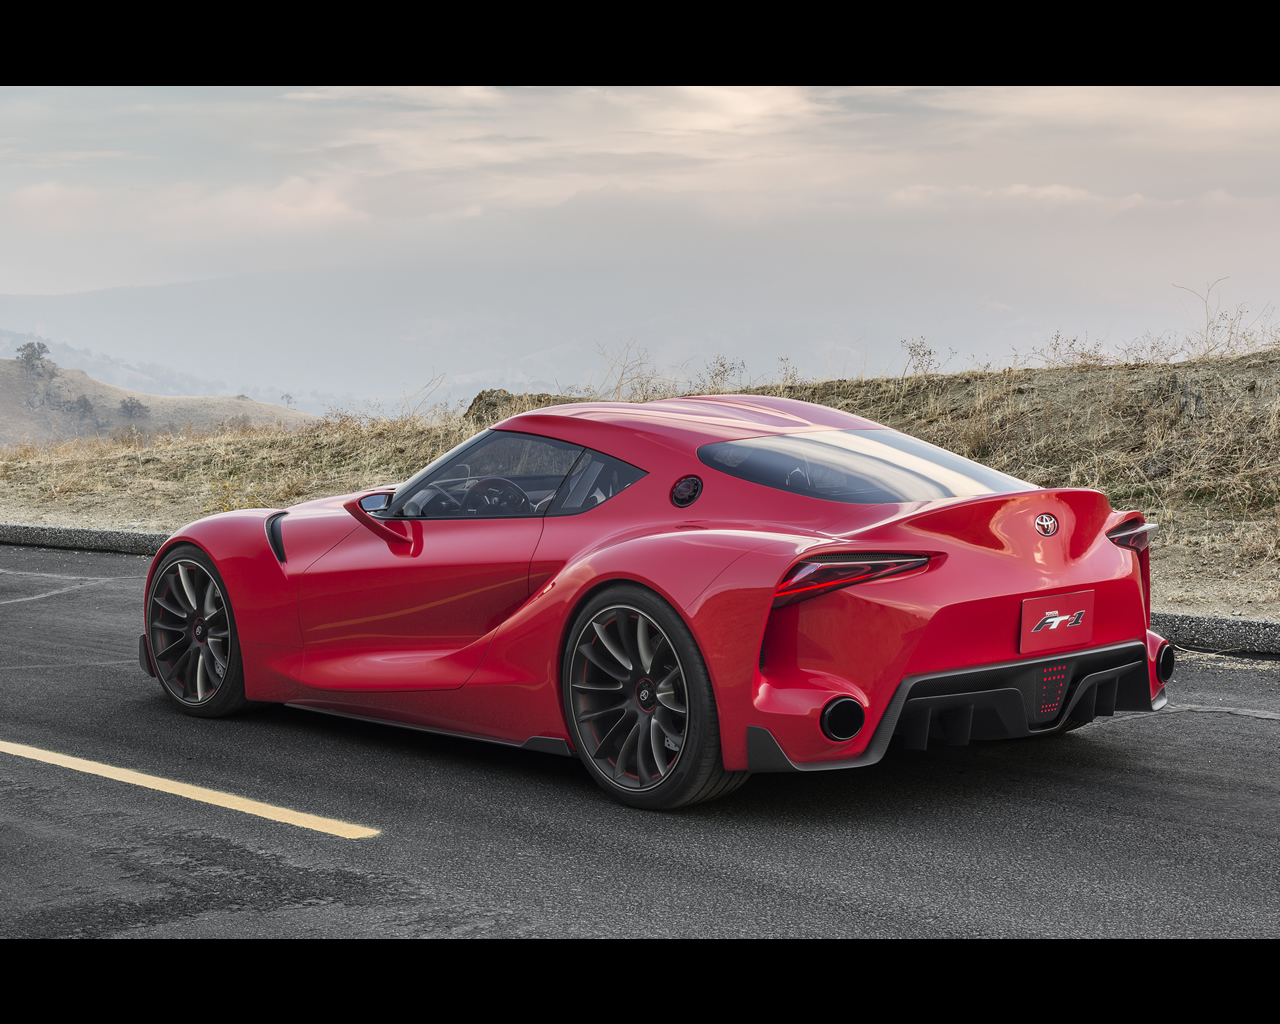 toyota ft 1 2014 concept price page 2 release date price and specs Car ...